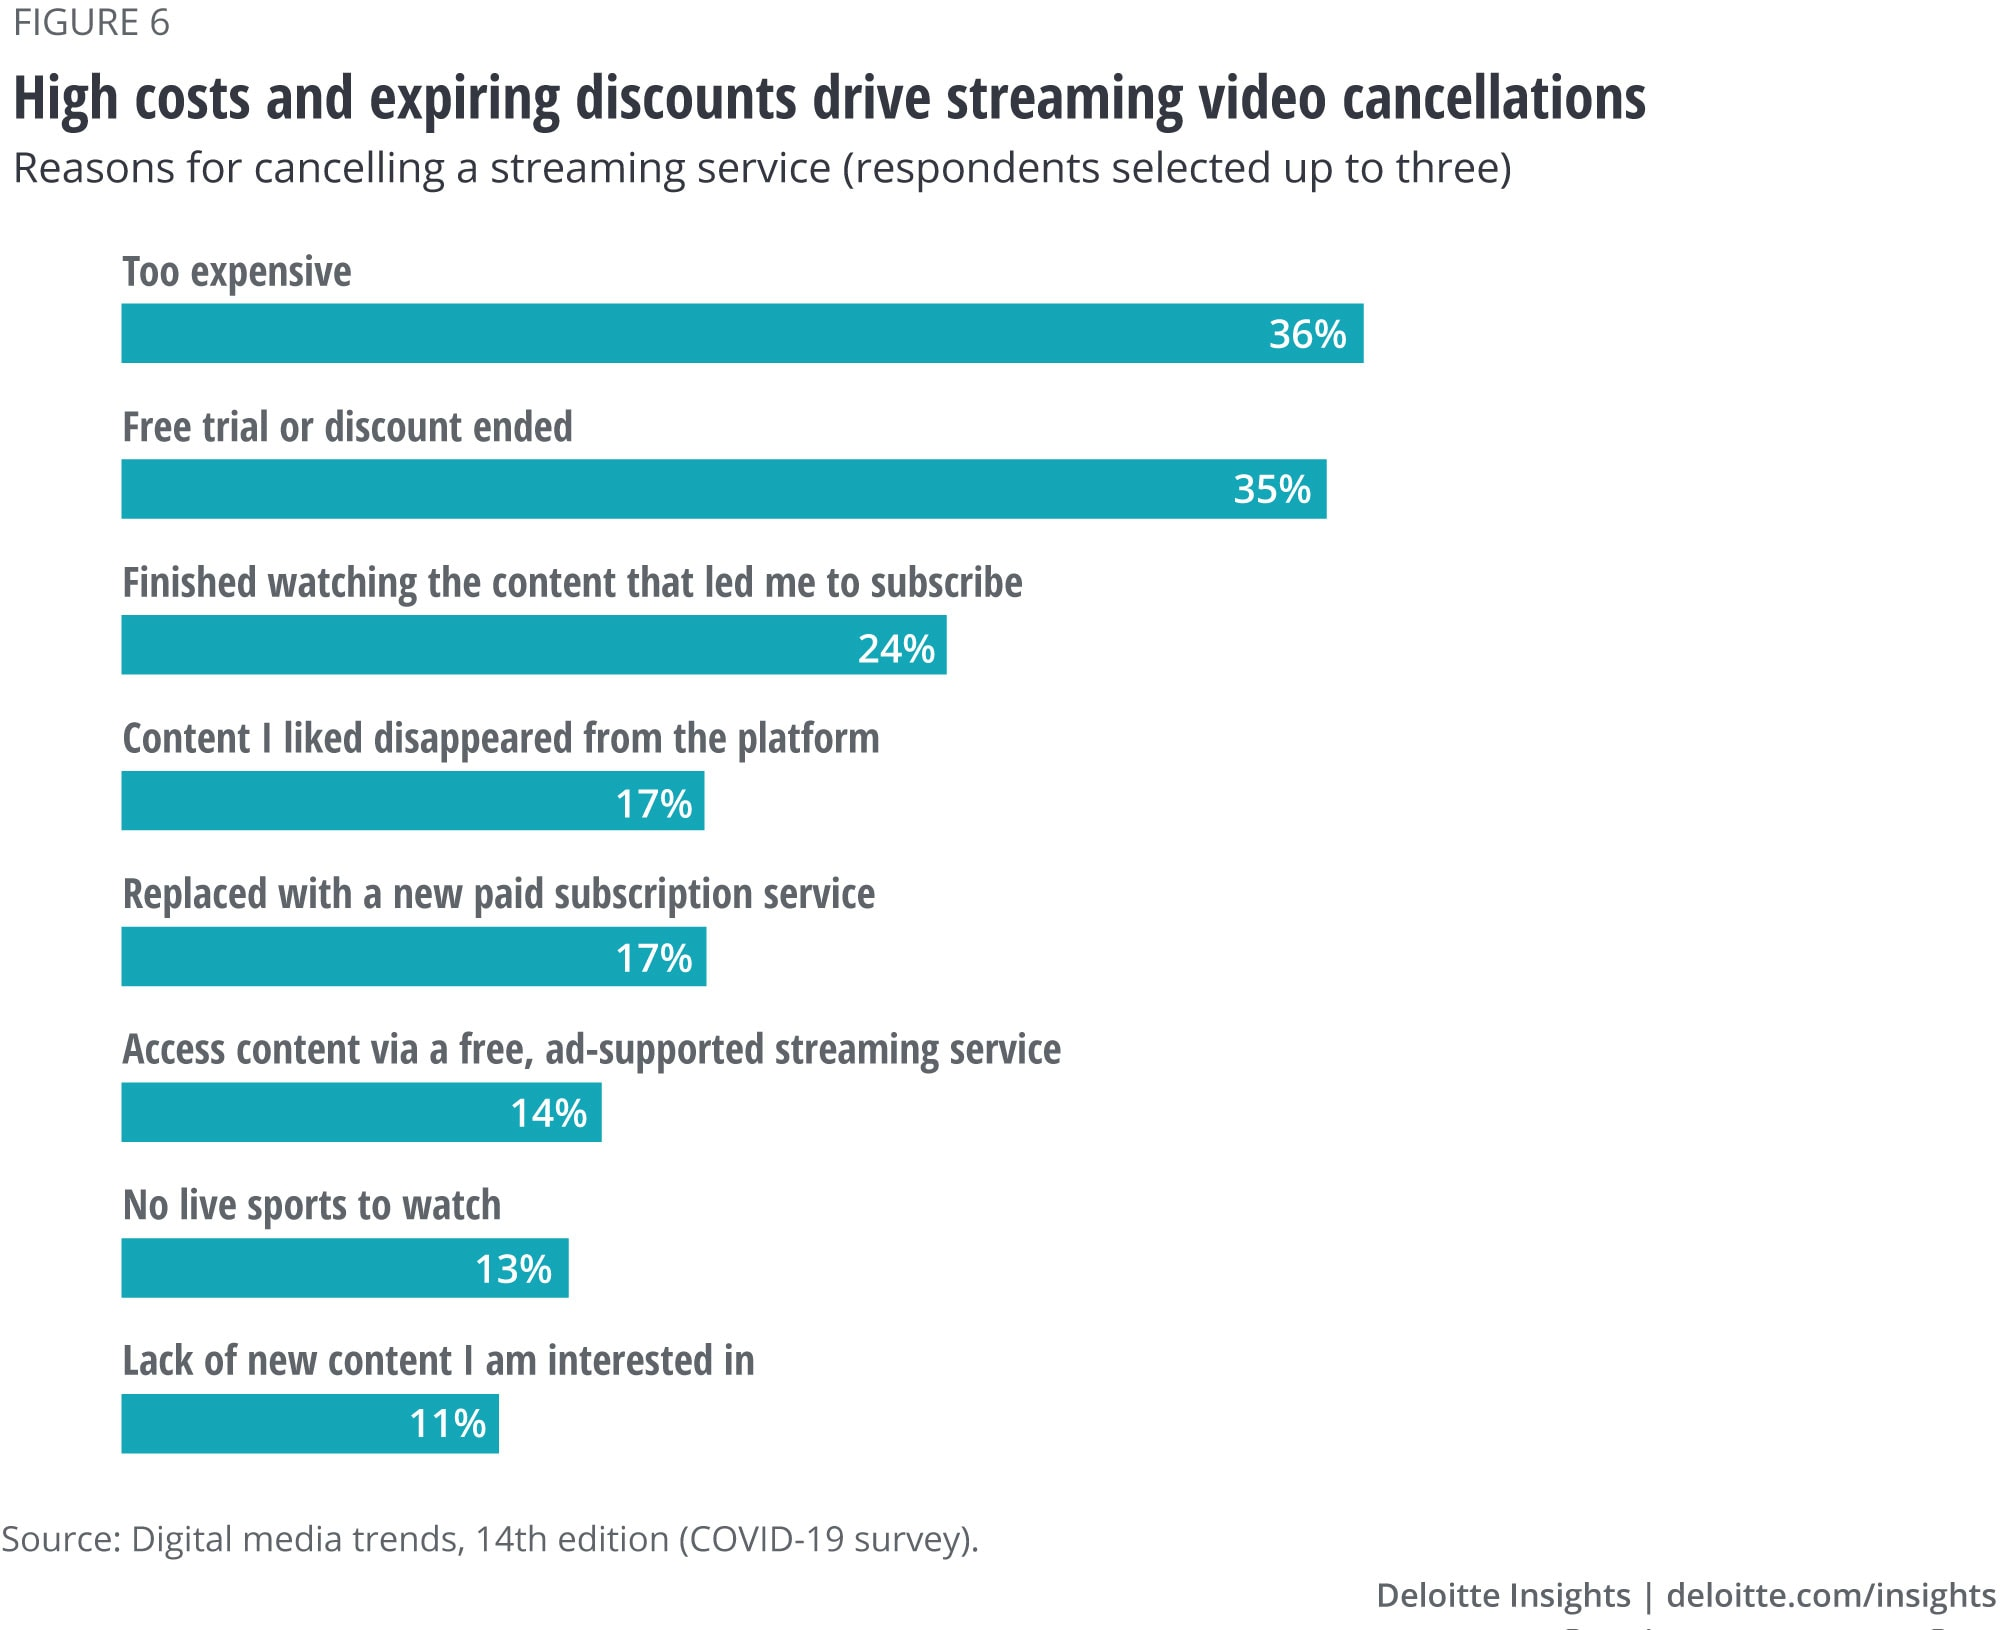 High costs and expiring discounts drive streaming video cancellations